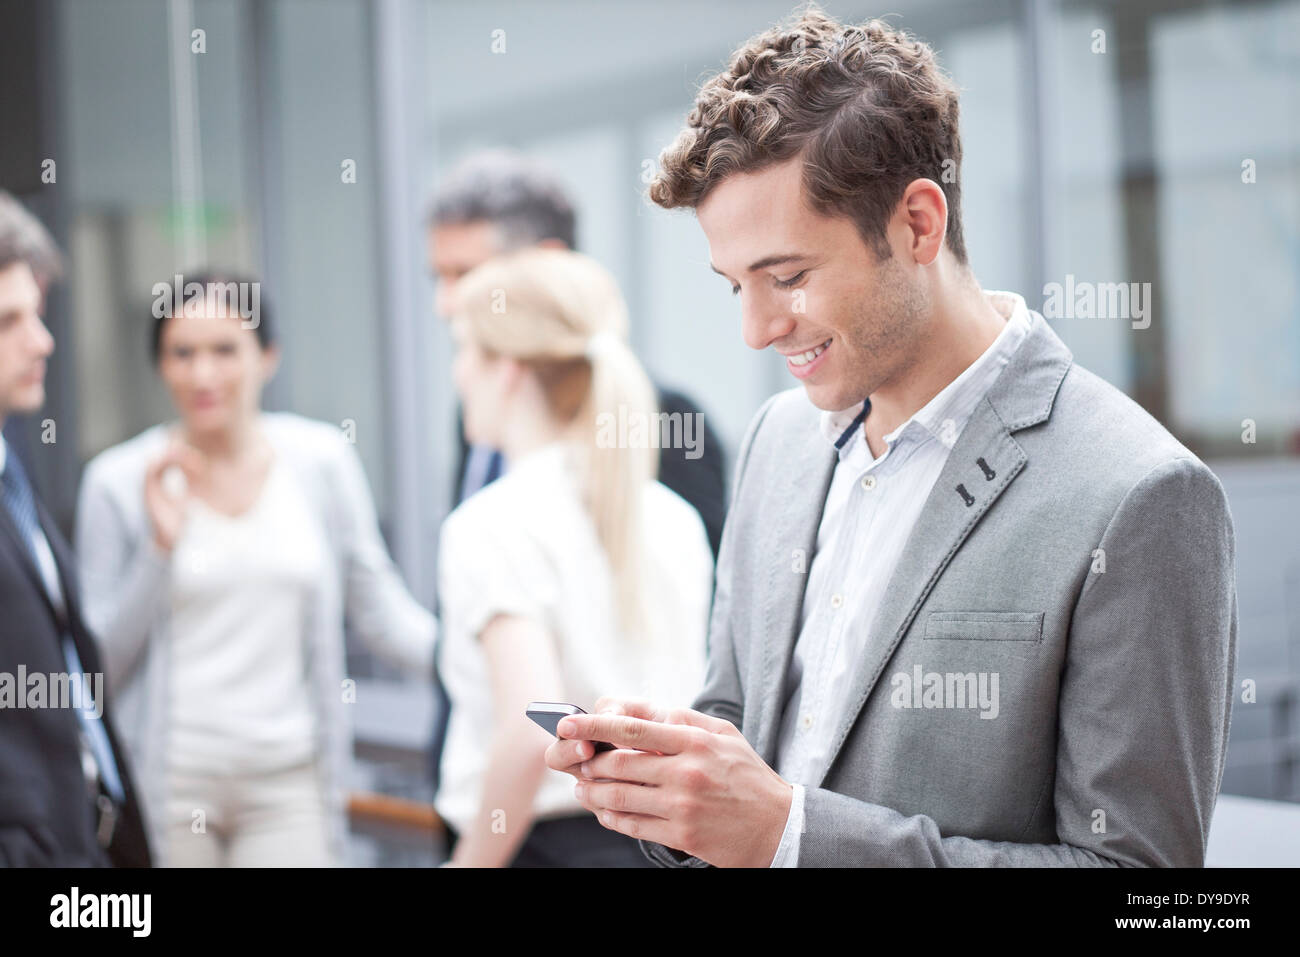 Businessman using cell phone while on the move - Stock Image